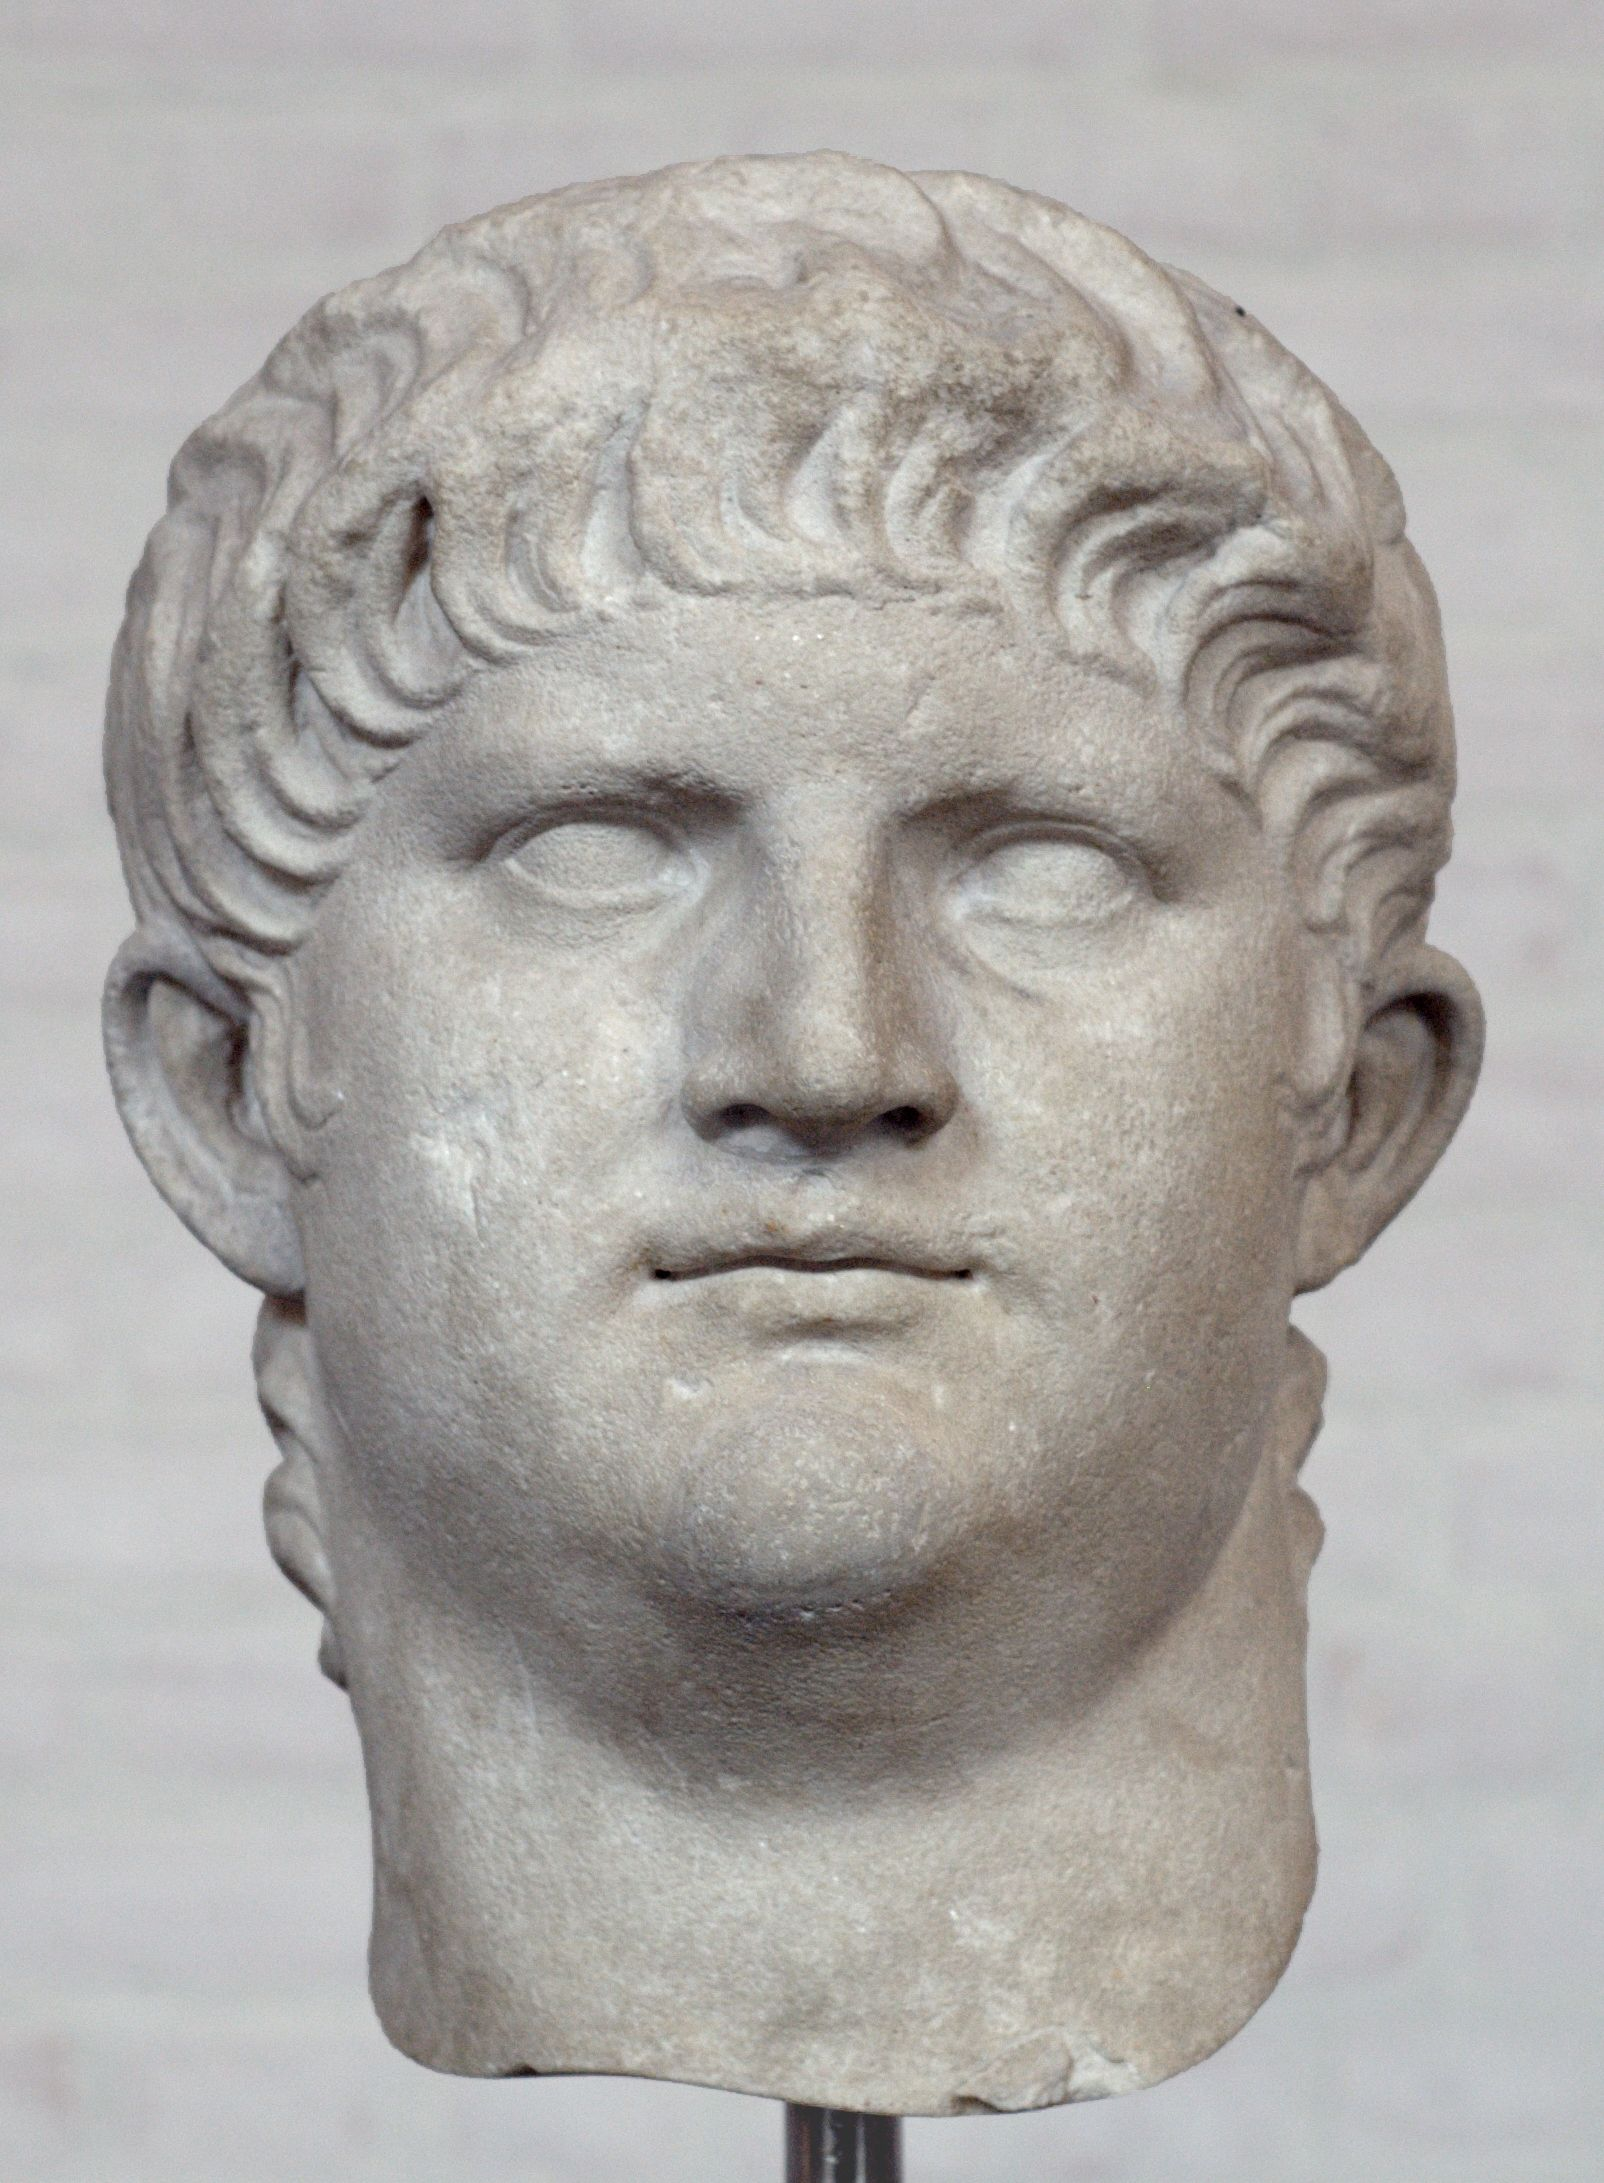 the last emperor of the julio claudian dynasty history essay Nero was the last of the julio-claudian dynasty  for the rest of imperial history,  what made an emperor – or what gave one candidate  classical antiquity, wrote  a short article (reprinted in his critical essays) on 'tacitus and.